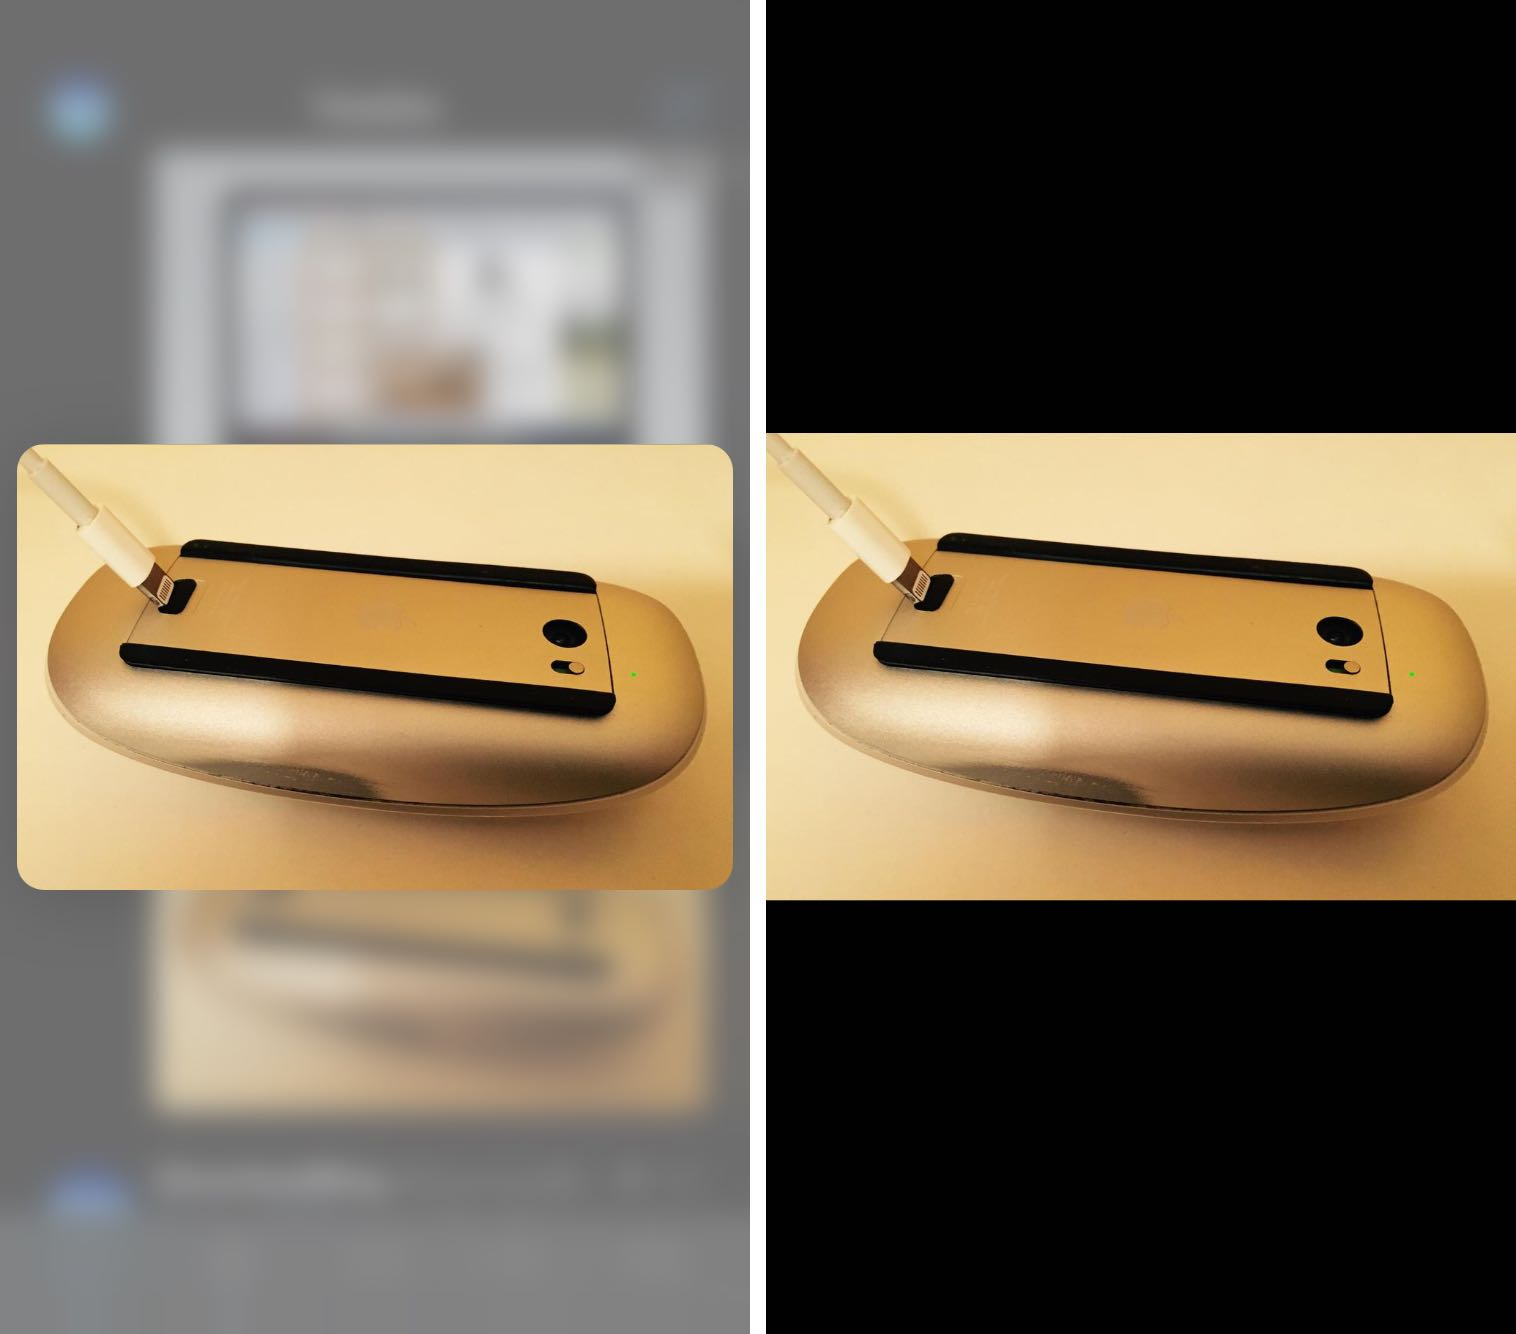 Tweetbot 4.0.1 for iOS 3D Touch iPhone screenshot 004